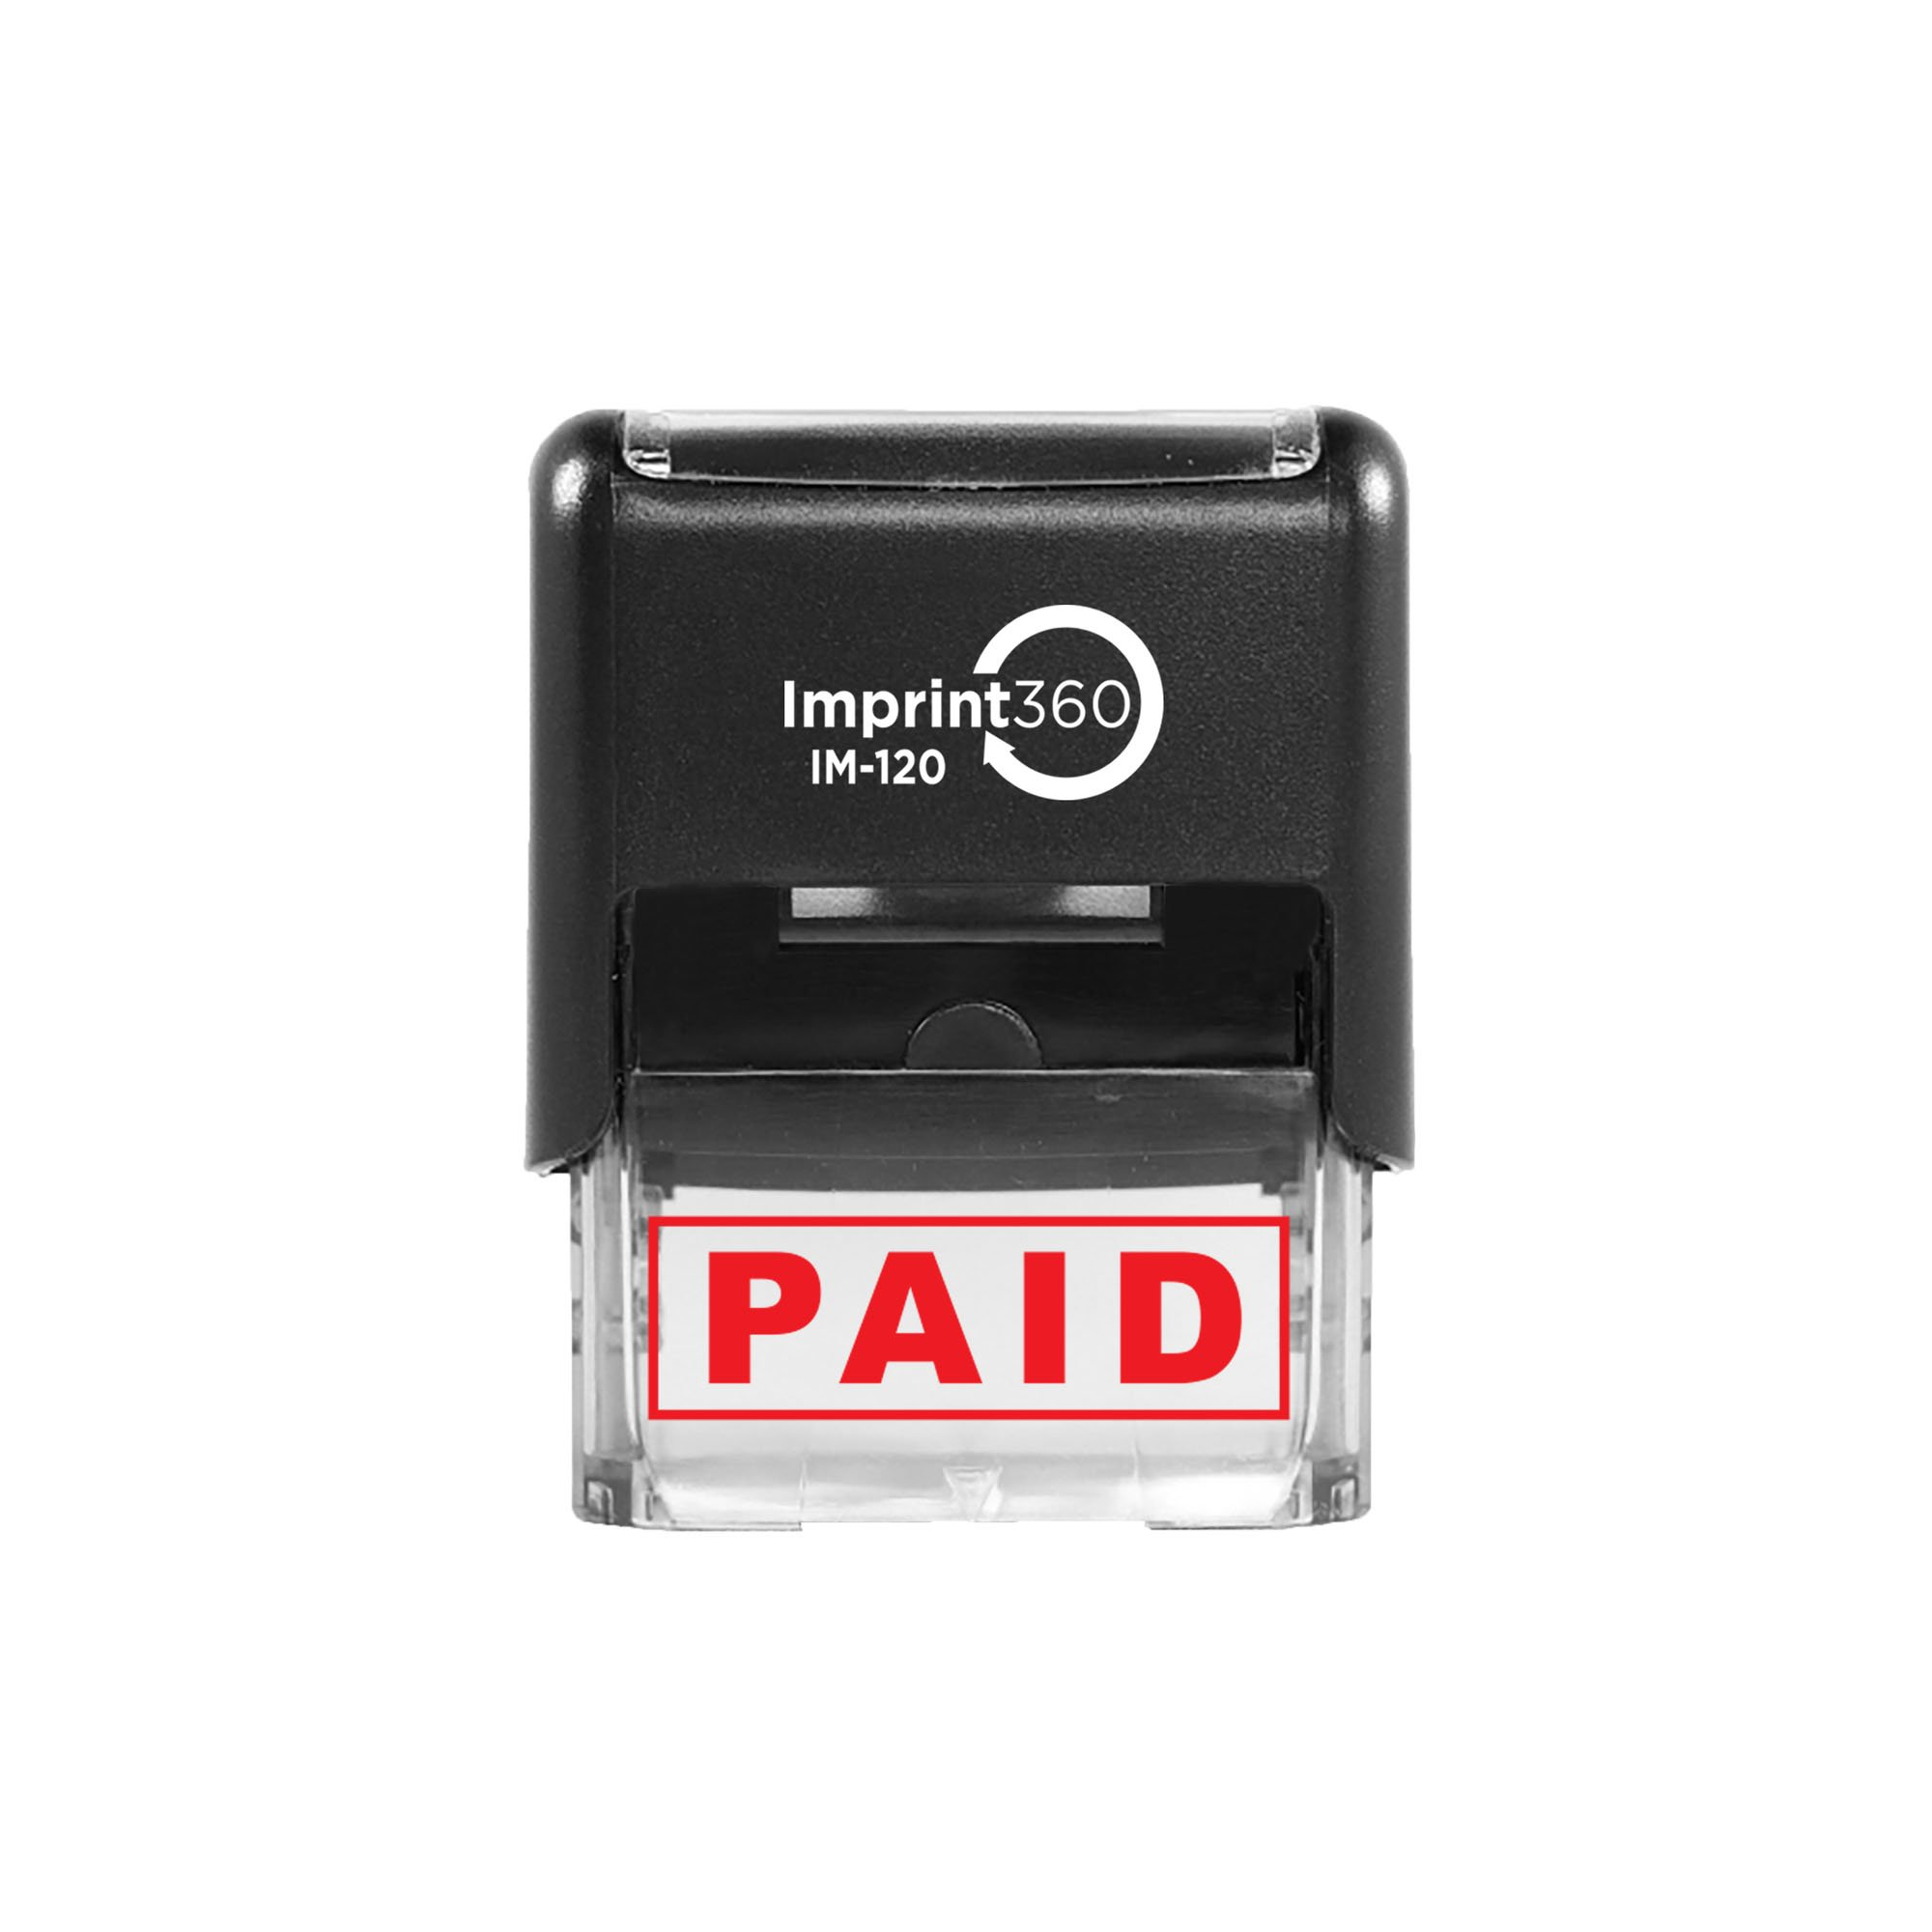 """Imprint 360 AS-IMP1027 - Paid, Heavy Duty Commerical Quality Self-Inking Rubber Stamp, Red Ink, 9/16"""" x 1-1/2"""" Impression Size, Laser Engraved for Clean, Precise Imprints"""